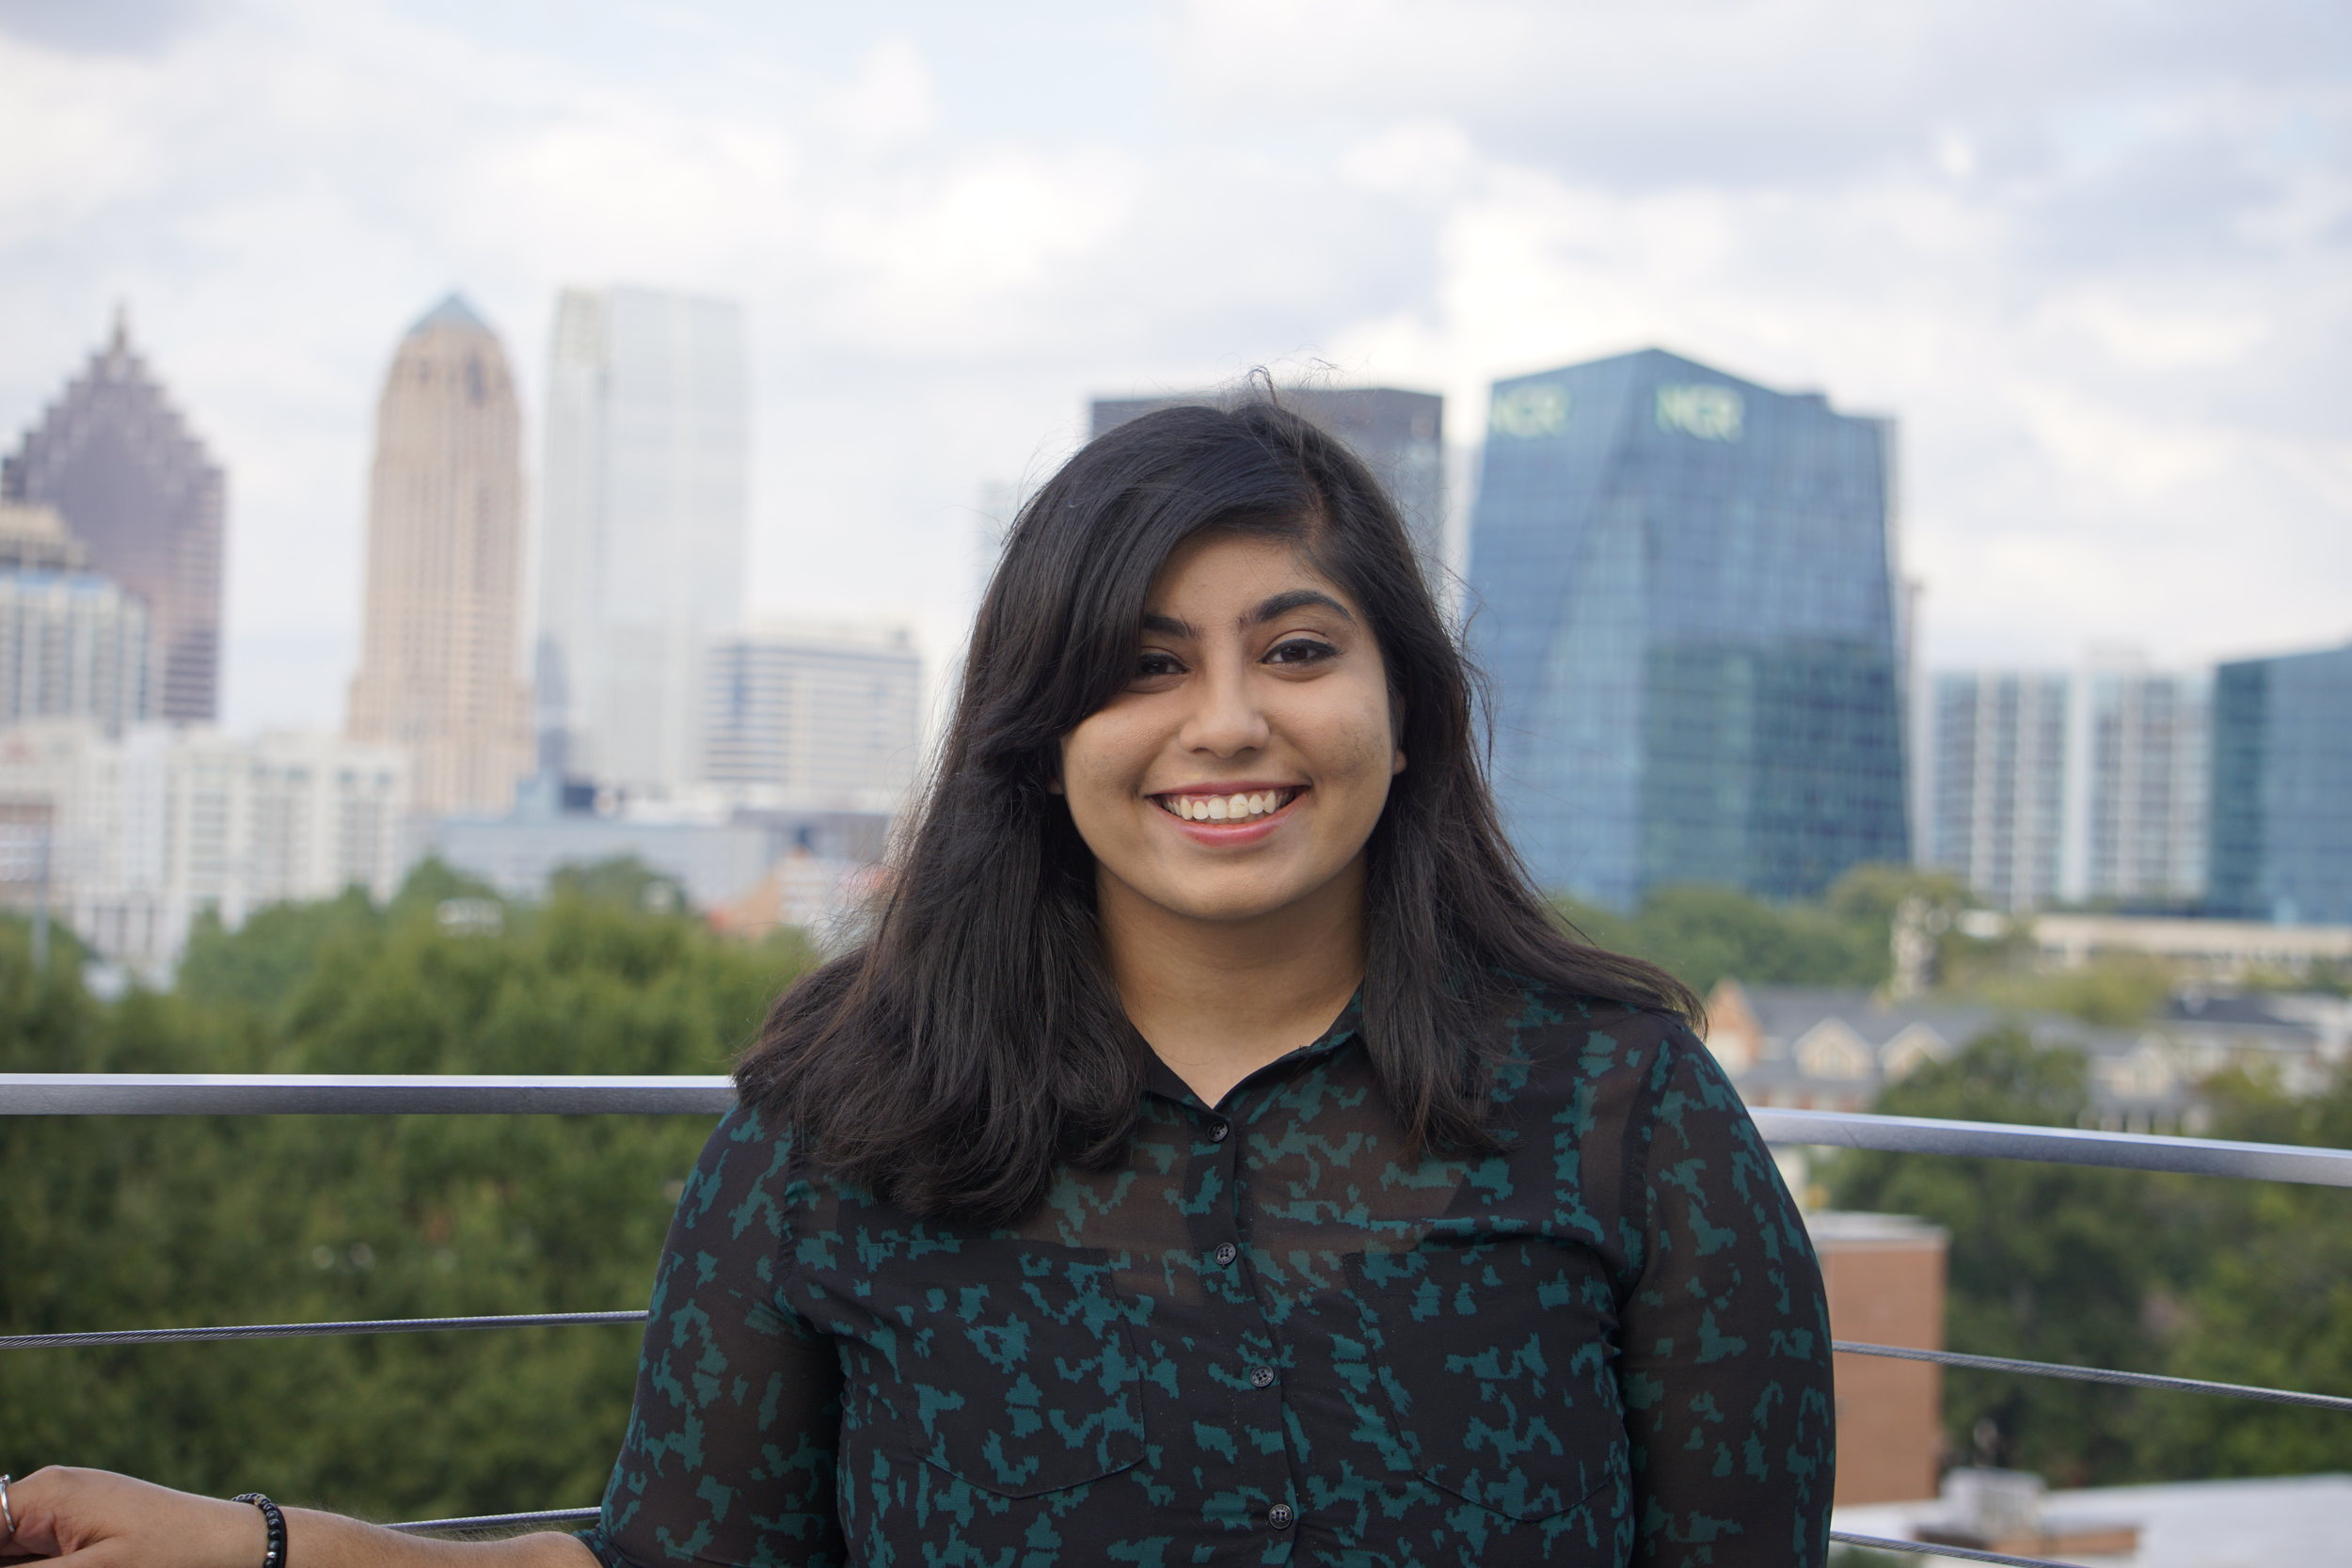 Hello there! - My name is Komal, and I'm a current 1st-year M.S. HCI student at Georgia Tech! I love designing products that provide a pleasurable experience to users and are backed up by research on the user group! Don't create without knowing who you're creating for!My main values: Empathy, Innovation, Design for others (not yourself)